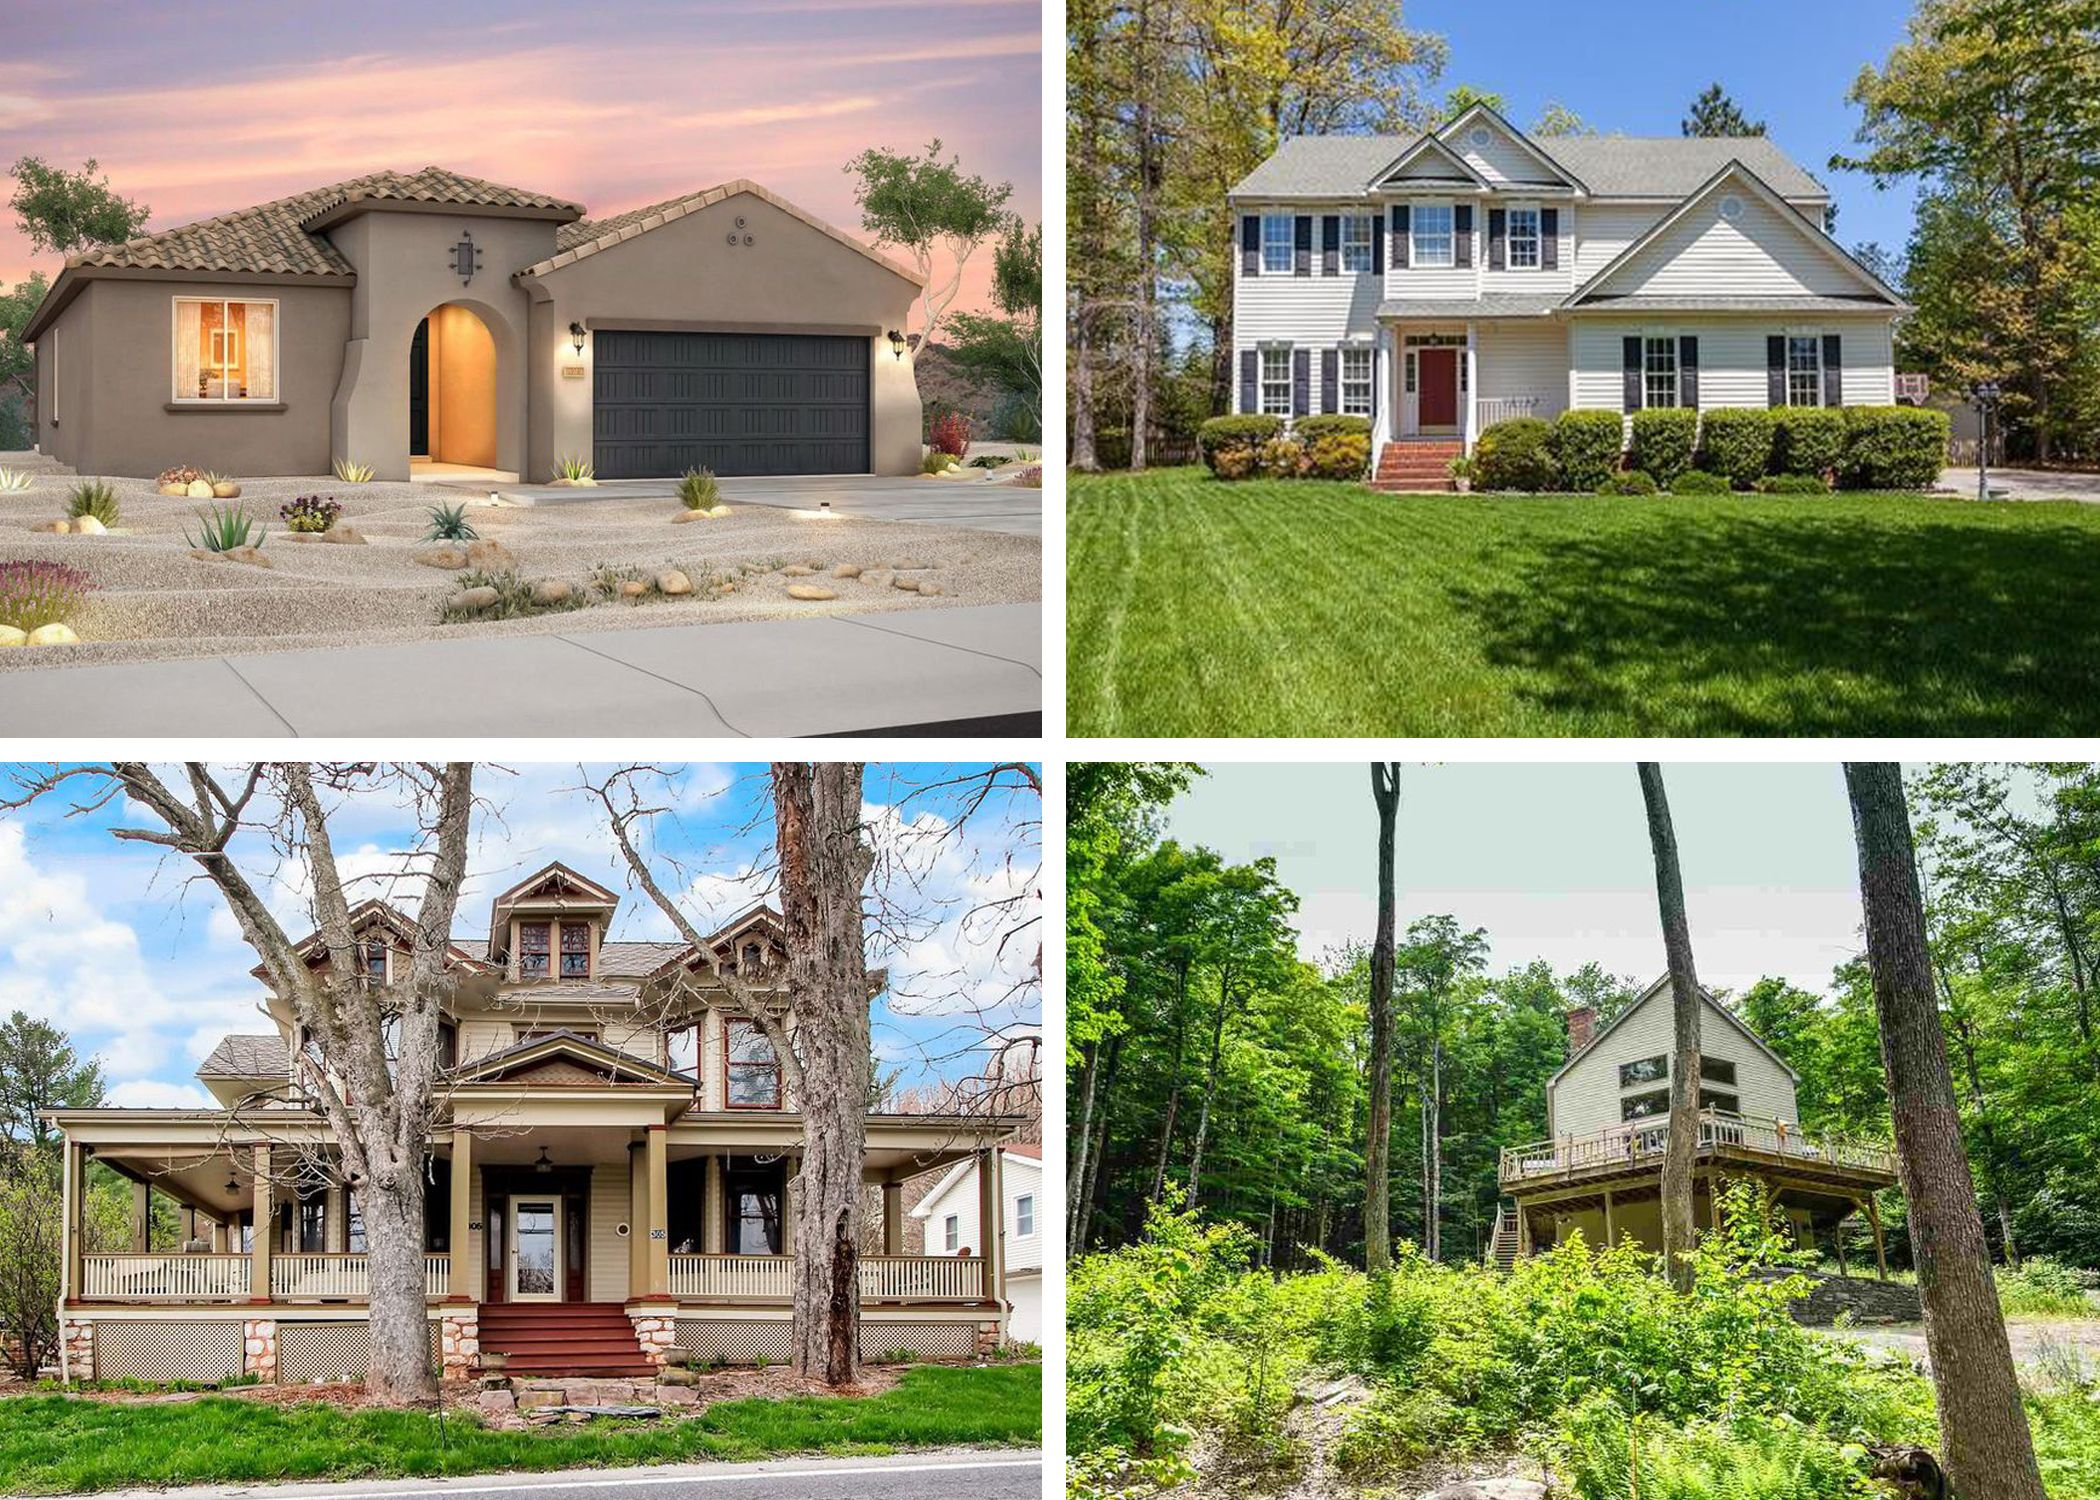 Real Estate: What $300K Gets You In Every State